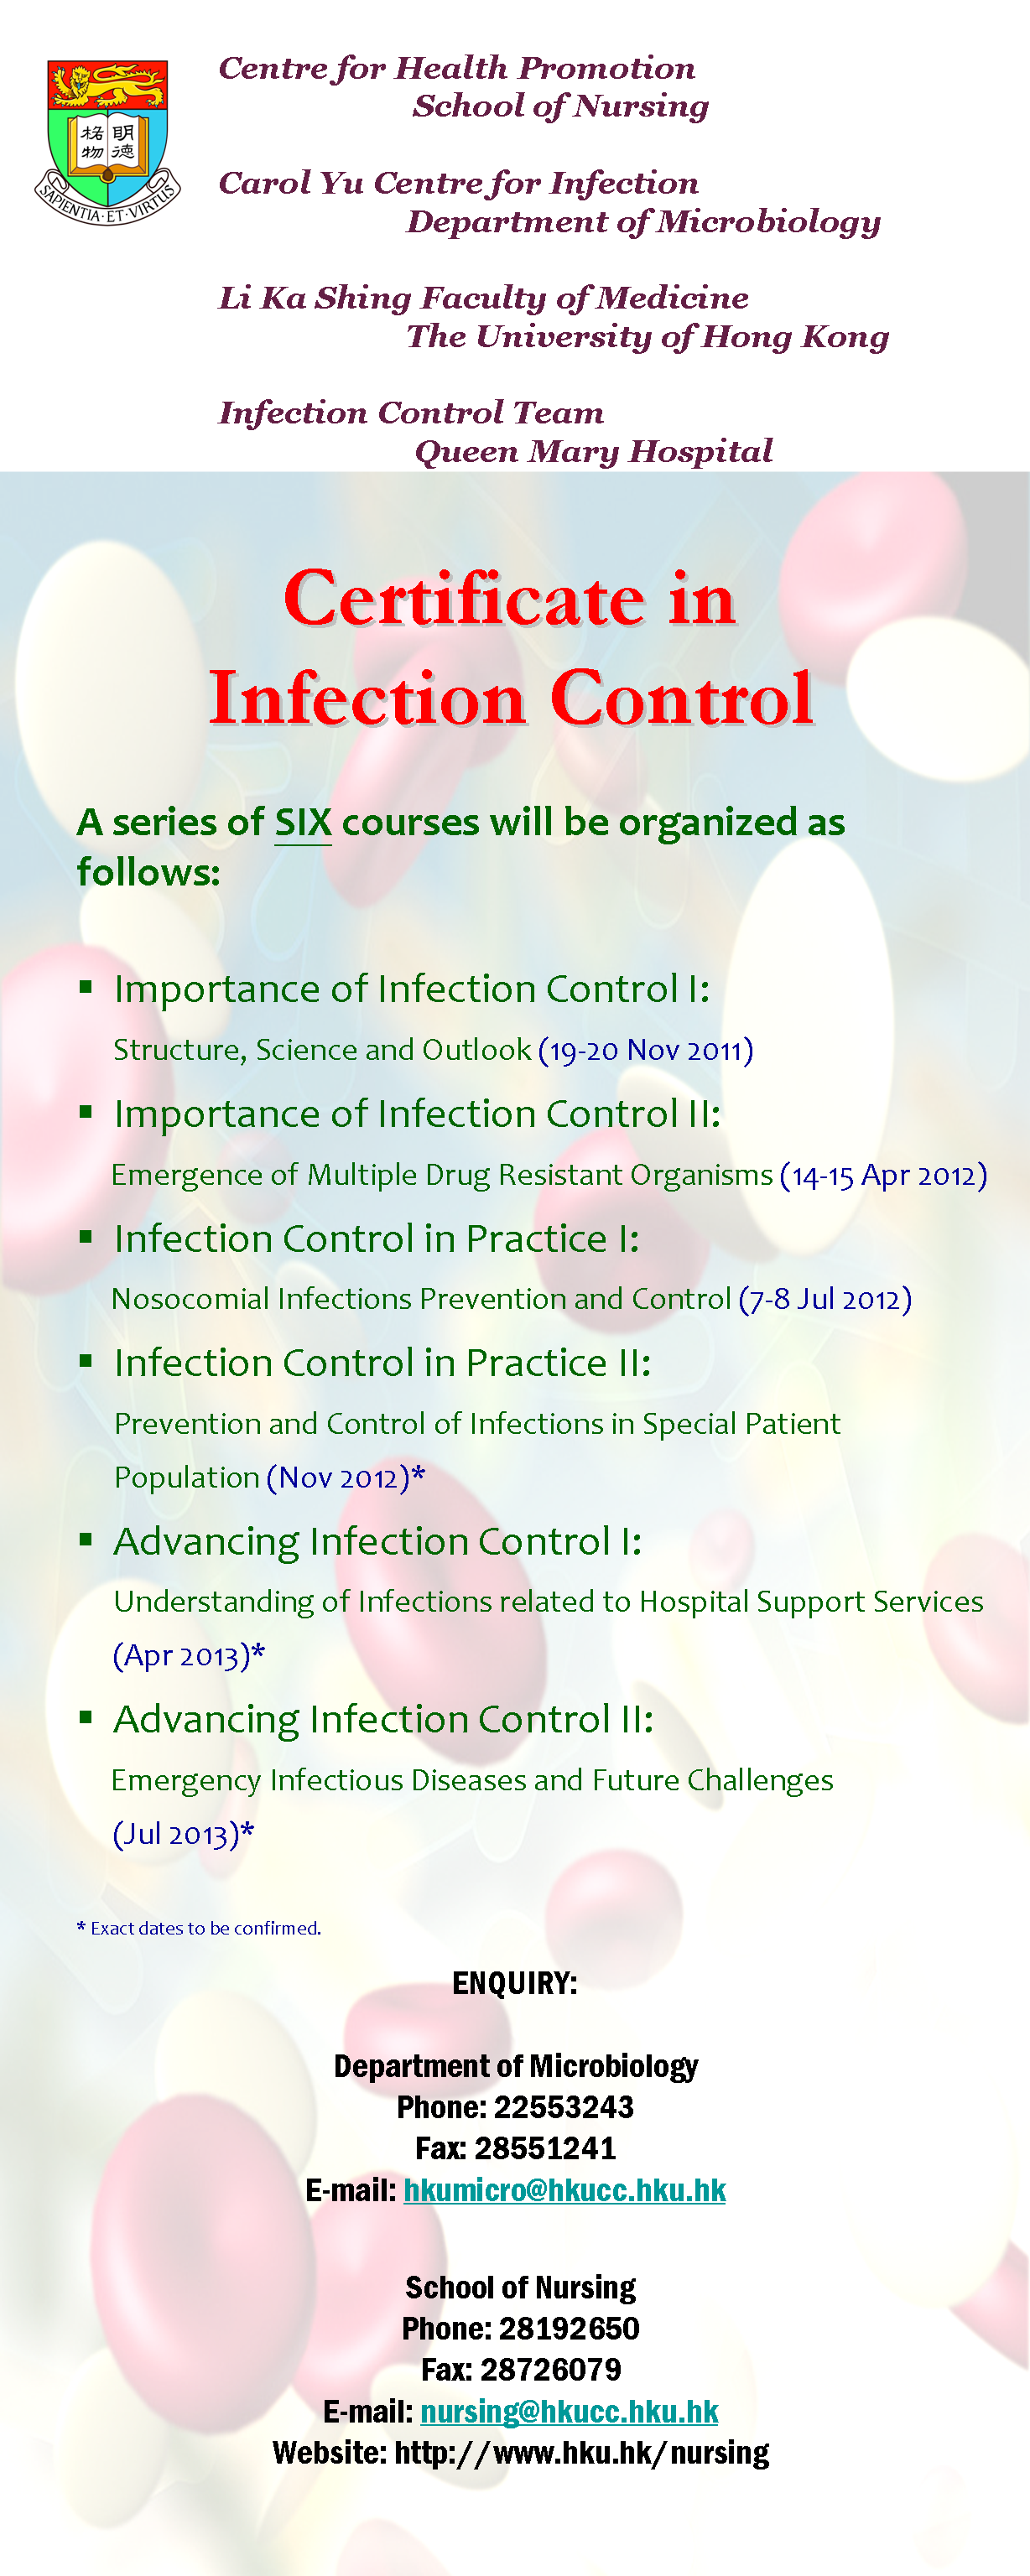 U Vision Online Certificate In Infection Control 19 20 November 2011